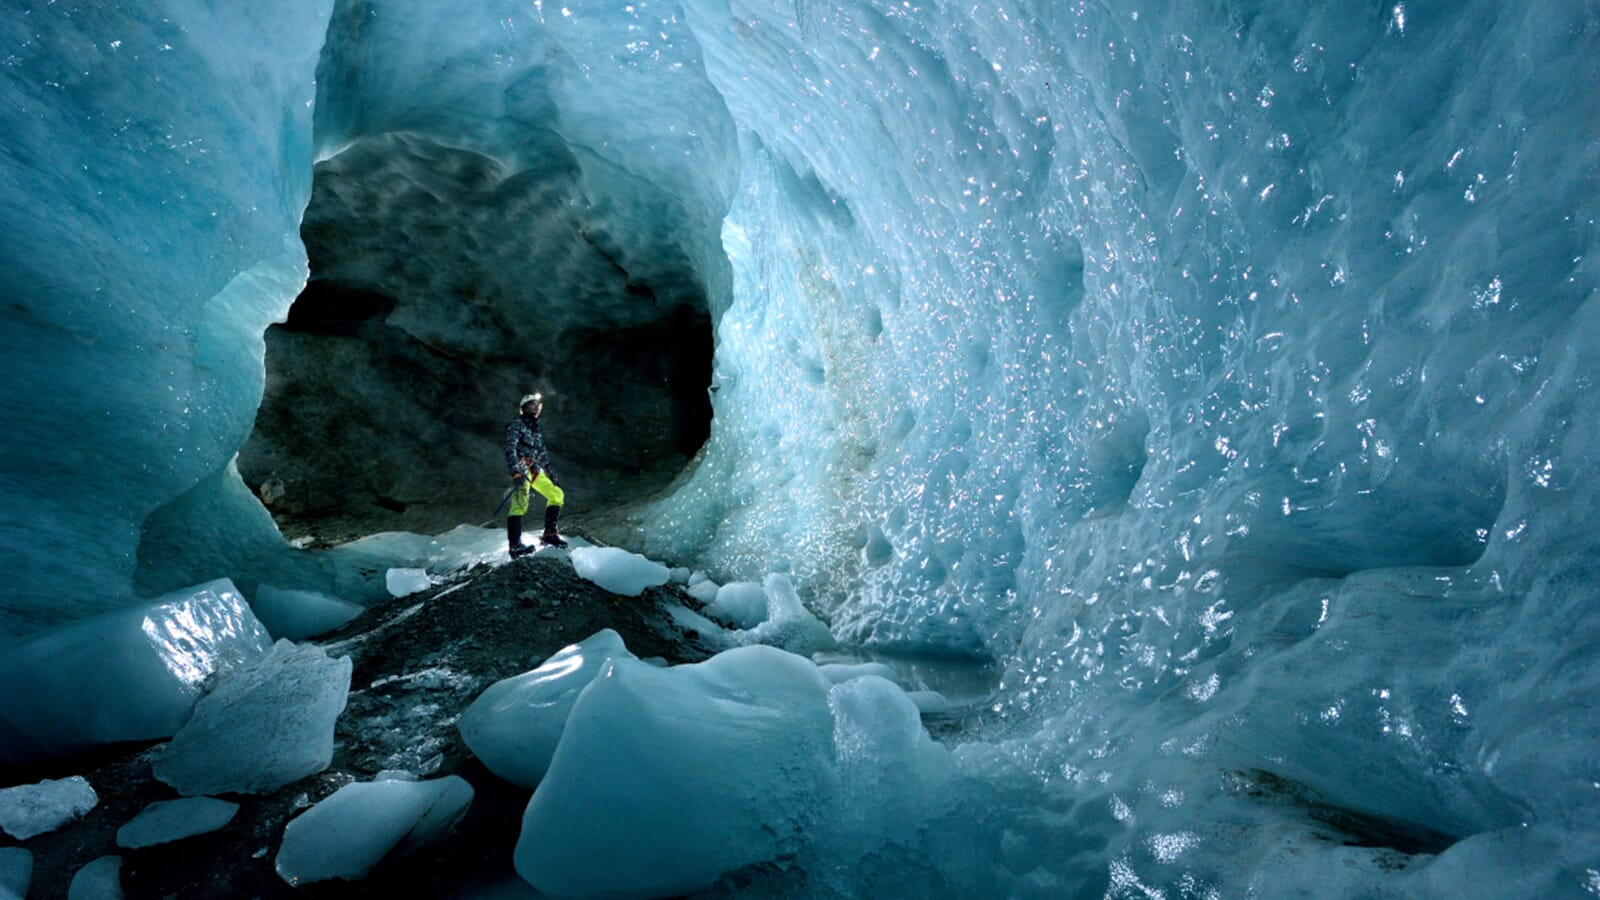 ice cold exploration robbie shone explores the ice caves in france